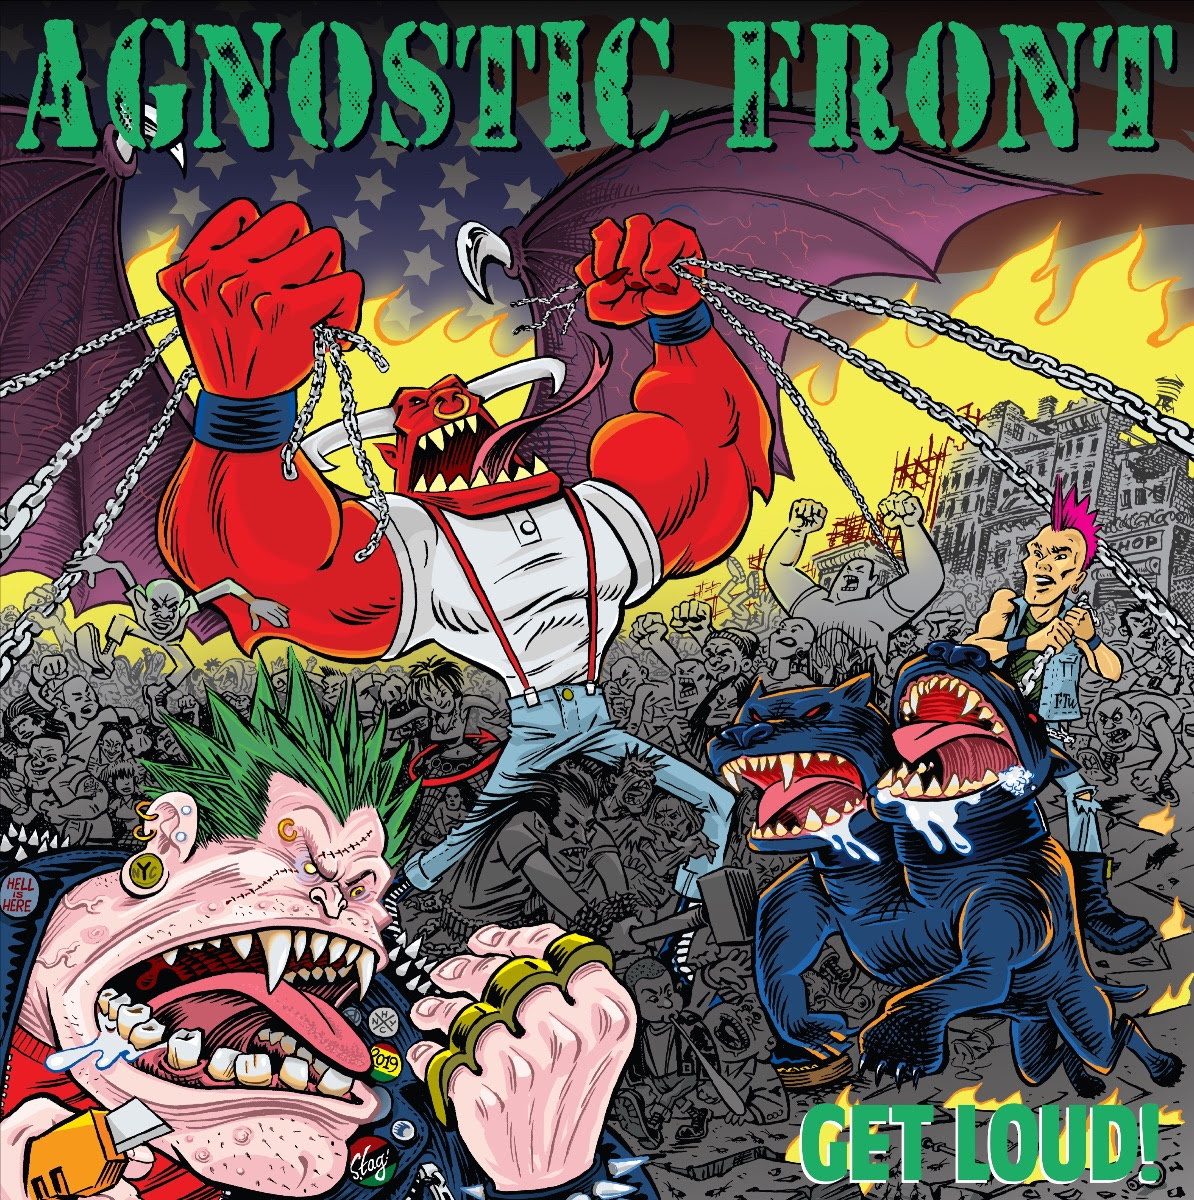 """Legendary NYHC pioneers  AGNOSTIC FRONT  are back to the scene with their twelfth studio album,   GET LOUD!,   which will be released on November 8th via  Nuclear Blast.   In celebration of the announcement, the band offer the lyric video for the first single,  """"Spray Painted Walls""""  which can be seen here:  https://youtu.be/rBU1wi_ijXU    Roger Miret  comments,  """"So excited for everyone to hear our new record    GET LOUD!    I really love the songs and it feels like a great mixture of what we have done our whole career! We put 100% into this from top to bottom! Everyone involved from start to finished just killed it! See you in the pit to celebrate these songs soon!""""     GET LOUD!   was produced by  Roger Miret  while long time friend  Paul Miner  handled the recording, mixing and mastering of the record at  Buzzbomb Studio  in Orange, CA. For the artwork, the band returned to 1986's   Cause For Alarm   artist  Sean Taggart.  It features the iconic CFA characters combined with a modern freshness    GET LOUD!   is compiled of 14 tracks that are nothing short of classic, home grown, New York Hardcore, but still includes some thrashy and punky variety.    GET LOUD!   will be available in the following formats:  CD Digi  VinylBlack VinylPicture VinylWhite ( Limited to 300)Blue Vinyl ( Limited to 300)Gold Vinyl ( Limited to 300)Green Vinyl (Limited 200)Red Vinyl  Red Cassette  T-Shirt  Long Sleeve BundleIncludes Long Sleeve Shirt & CD  Pre-order   GET LOUD!   in the format of your choice here:  www.nuclearblast.com/agnosticfront-getloud  Pre-save the album on Spotify, Apple Music and Deezer:  https://nblast.de/AgnosticFrontPreSave     GET LOUD!   track list:  Spray Painted Walls  Anti Social  Get Loud!  Conquer And Divide  I Remember  Dead Silence  AF Stomp  Urban Decay  Snitches Get Stitches  Isolated  In My Blood  Attention  Pull The Trigger  Devastated   WATCH:   """"Spray Painted Walls"""" Lyric Video    Next week, AGNOSTIC FRONT  will kick off their U.S. trek to celebrat"""